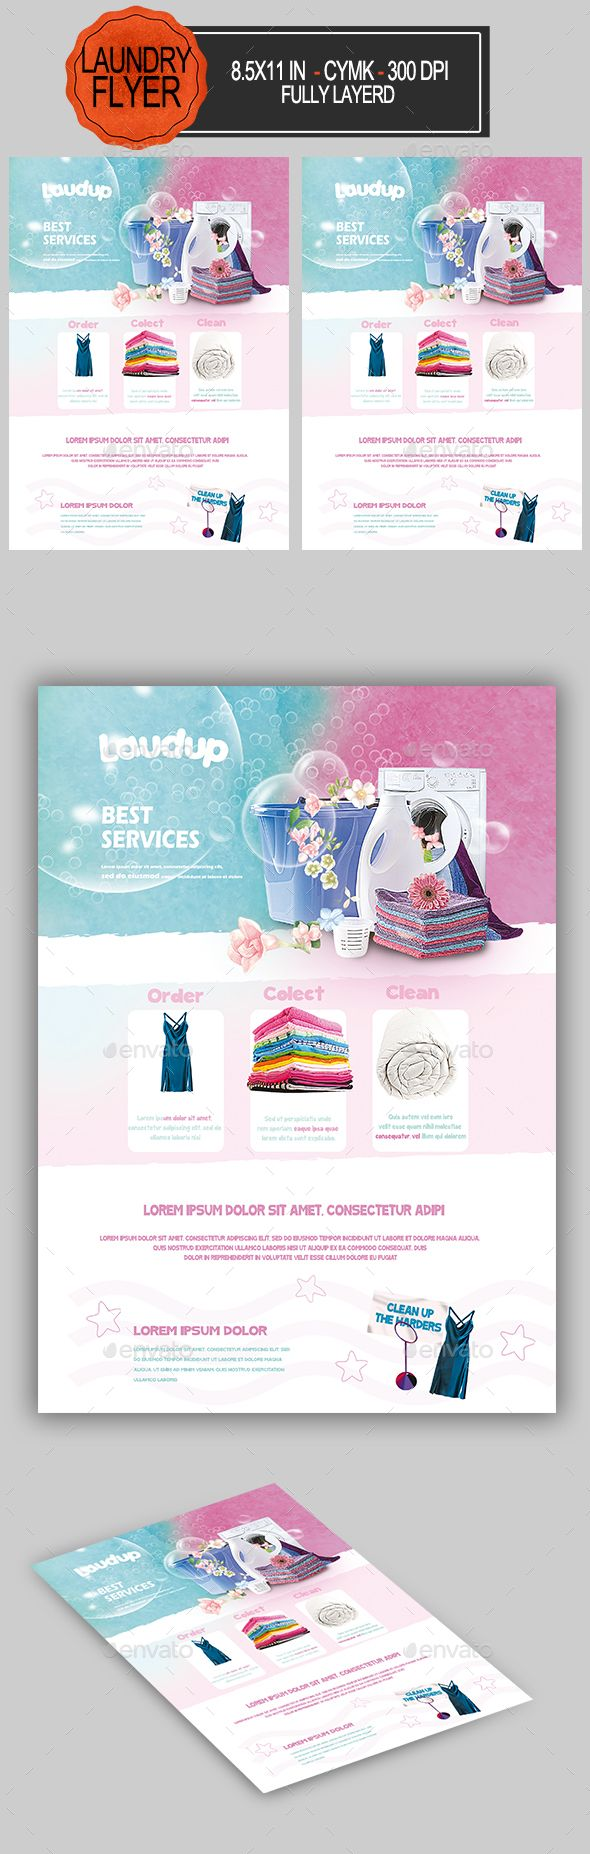 Laundry Flyer Miscellaneous Events Flyer Flyer Template Promotional Design